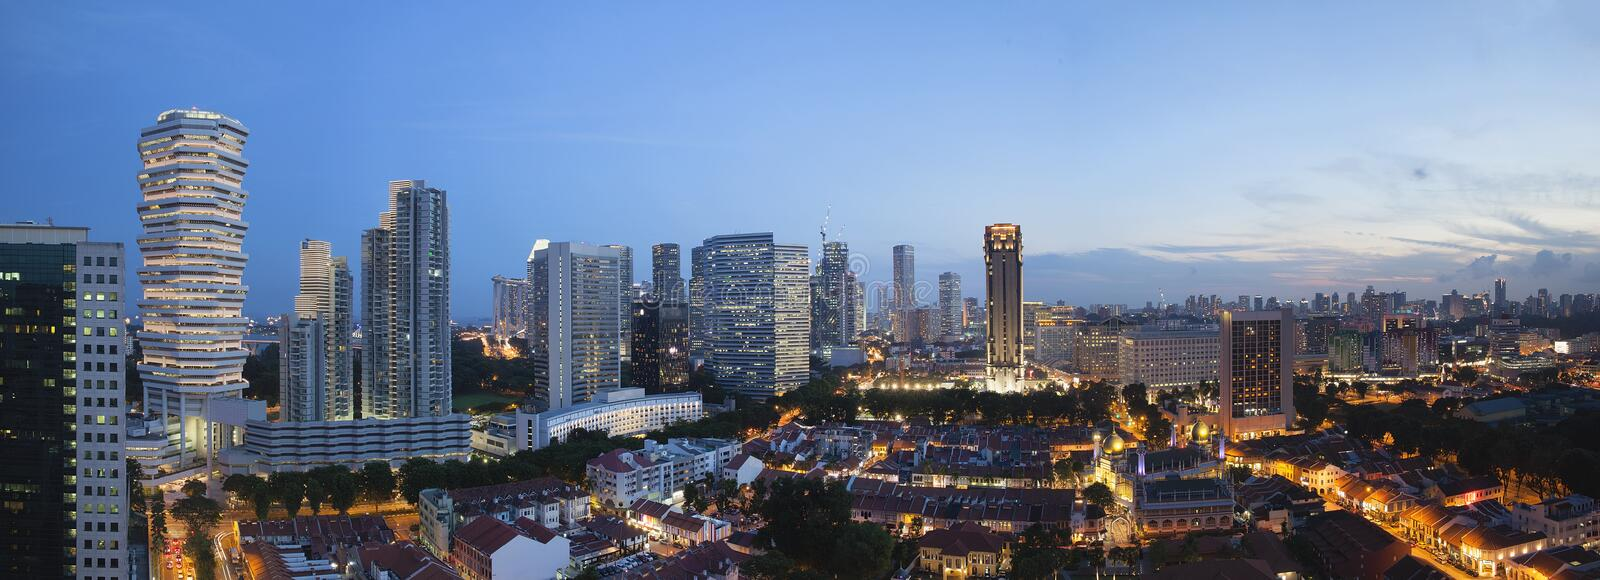 Kampong Glam in Singapore Aerial View at Blue Hour Panorama. Kampong Glam with Singapore City Skyline and Sultan Mosque Aerial View during Evening Blue Hour stock photo